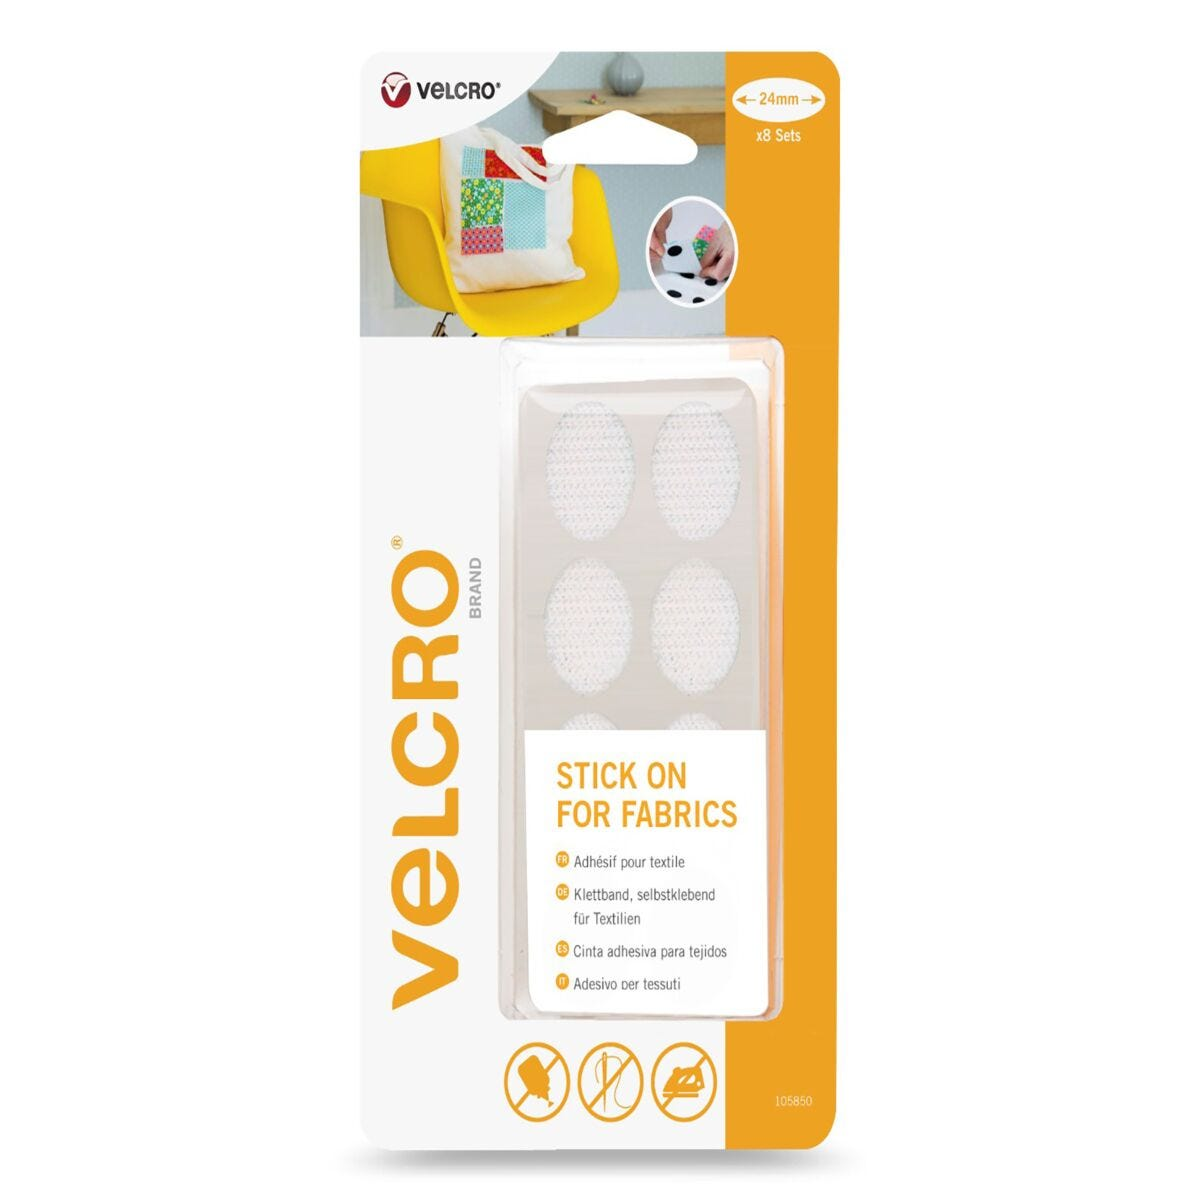 VELCRO Brand Oval Stick On For Fabric 24mm x 8 Sets White